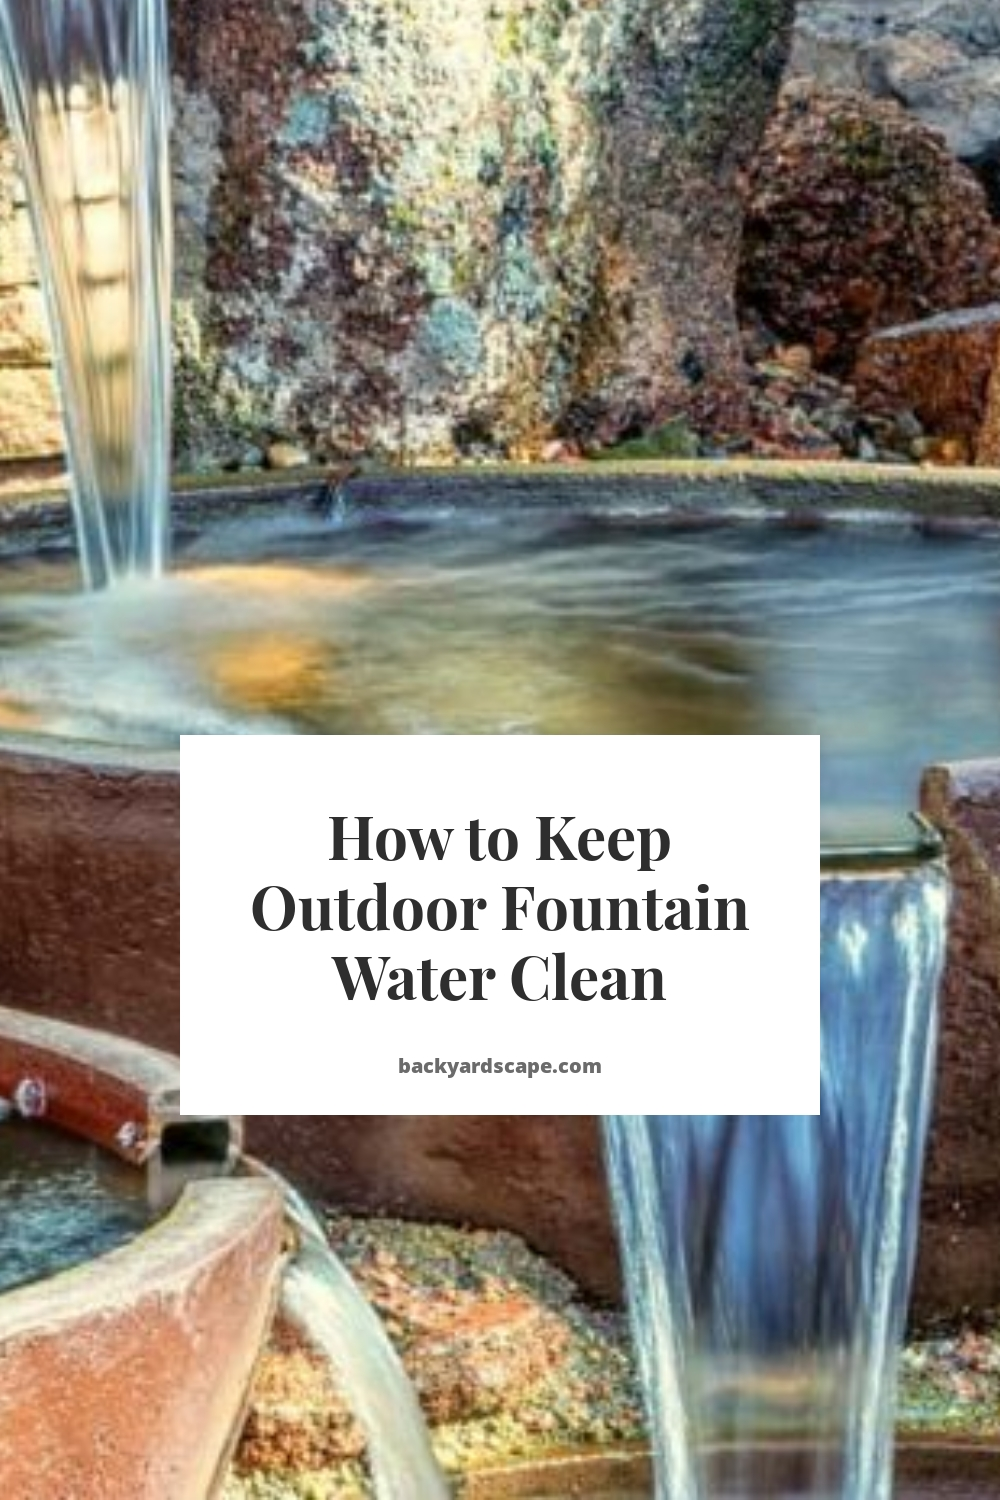 How to Keep Outdoor Fountain Water Clean